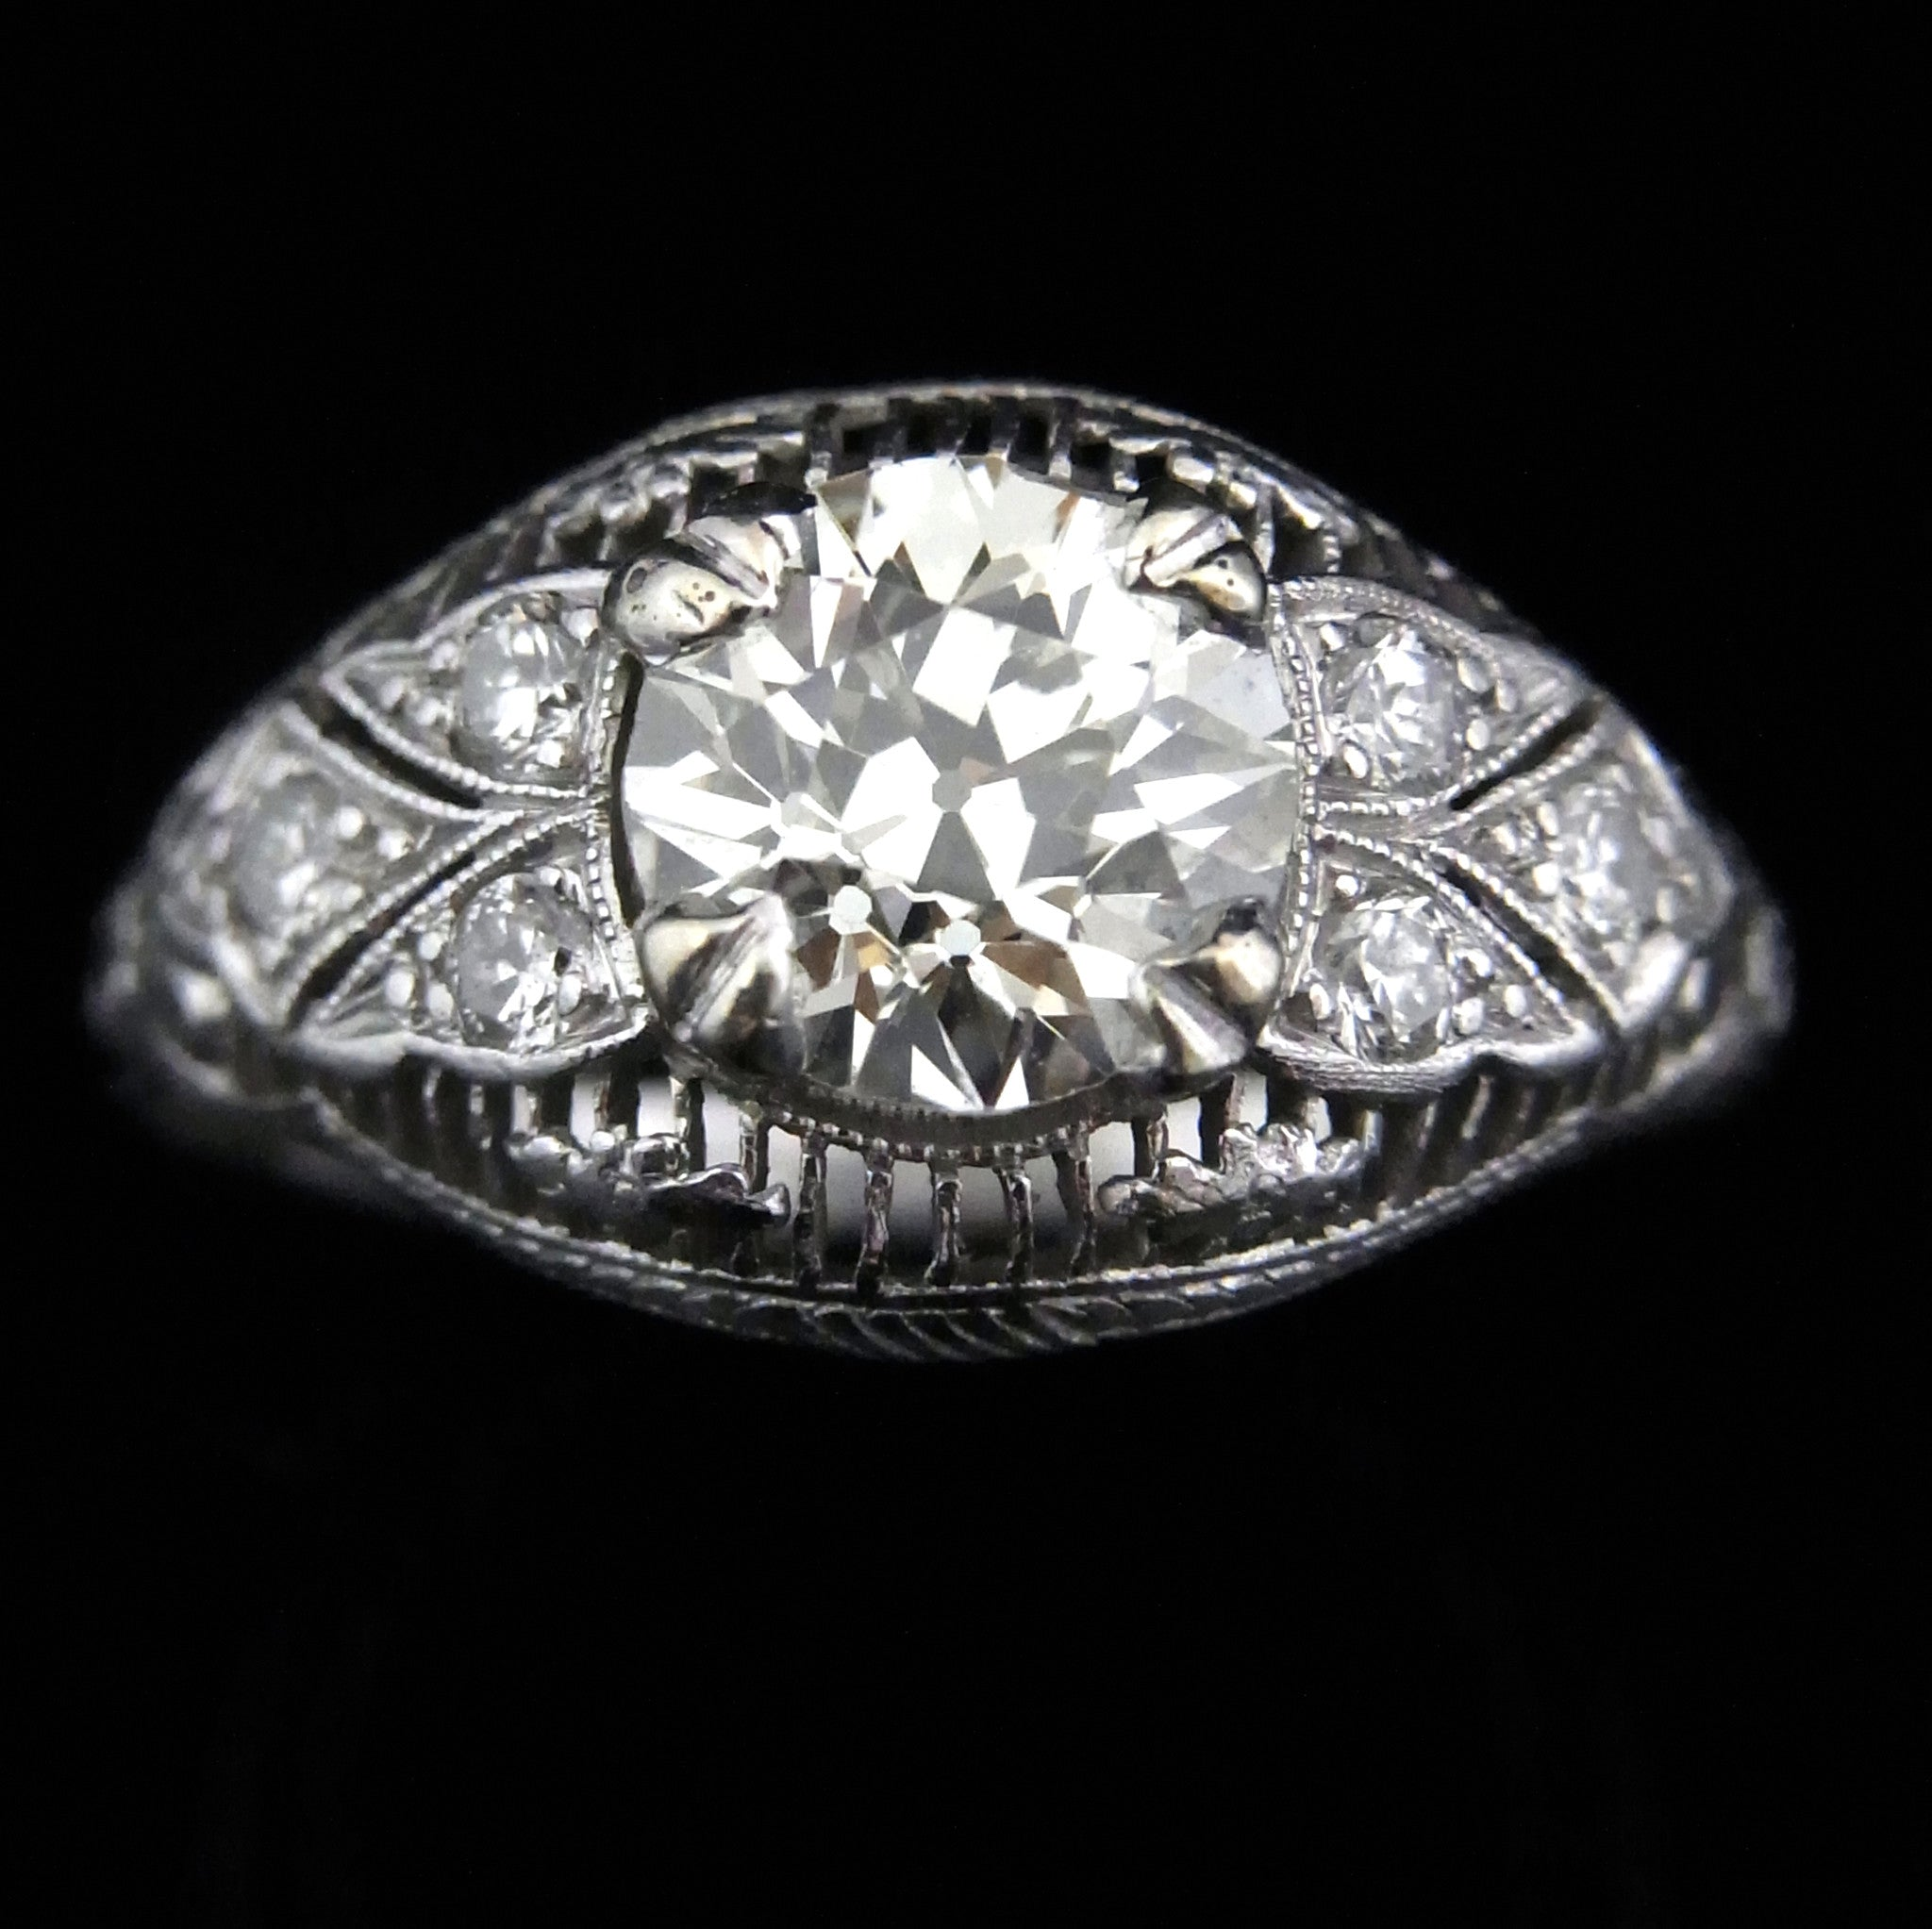 hearts on c diamond sol jubilation fire scintillation diamonds